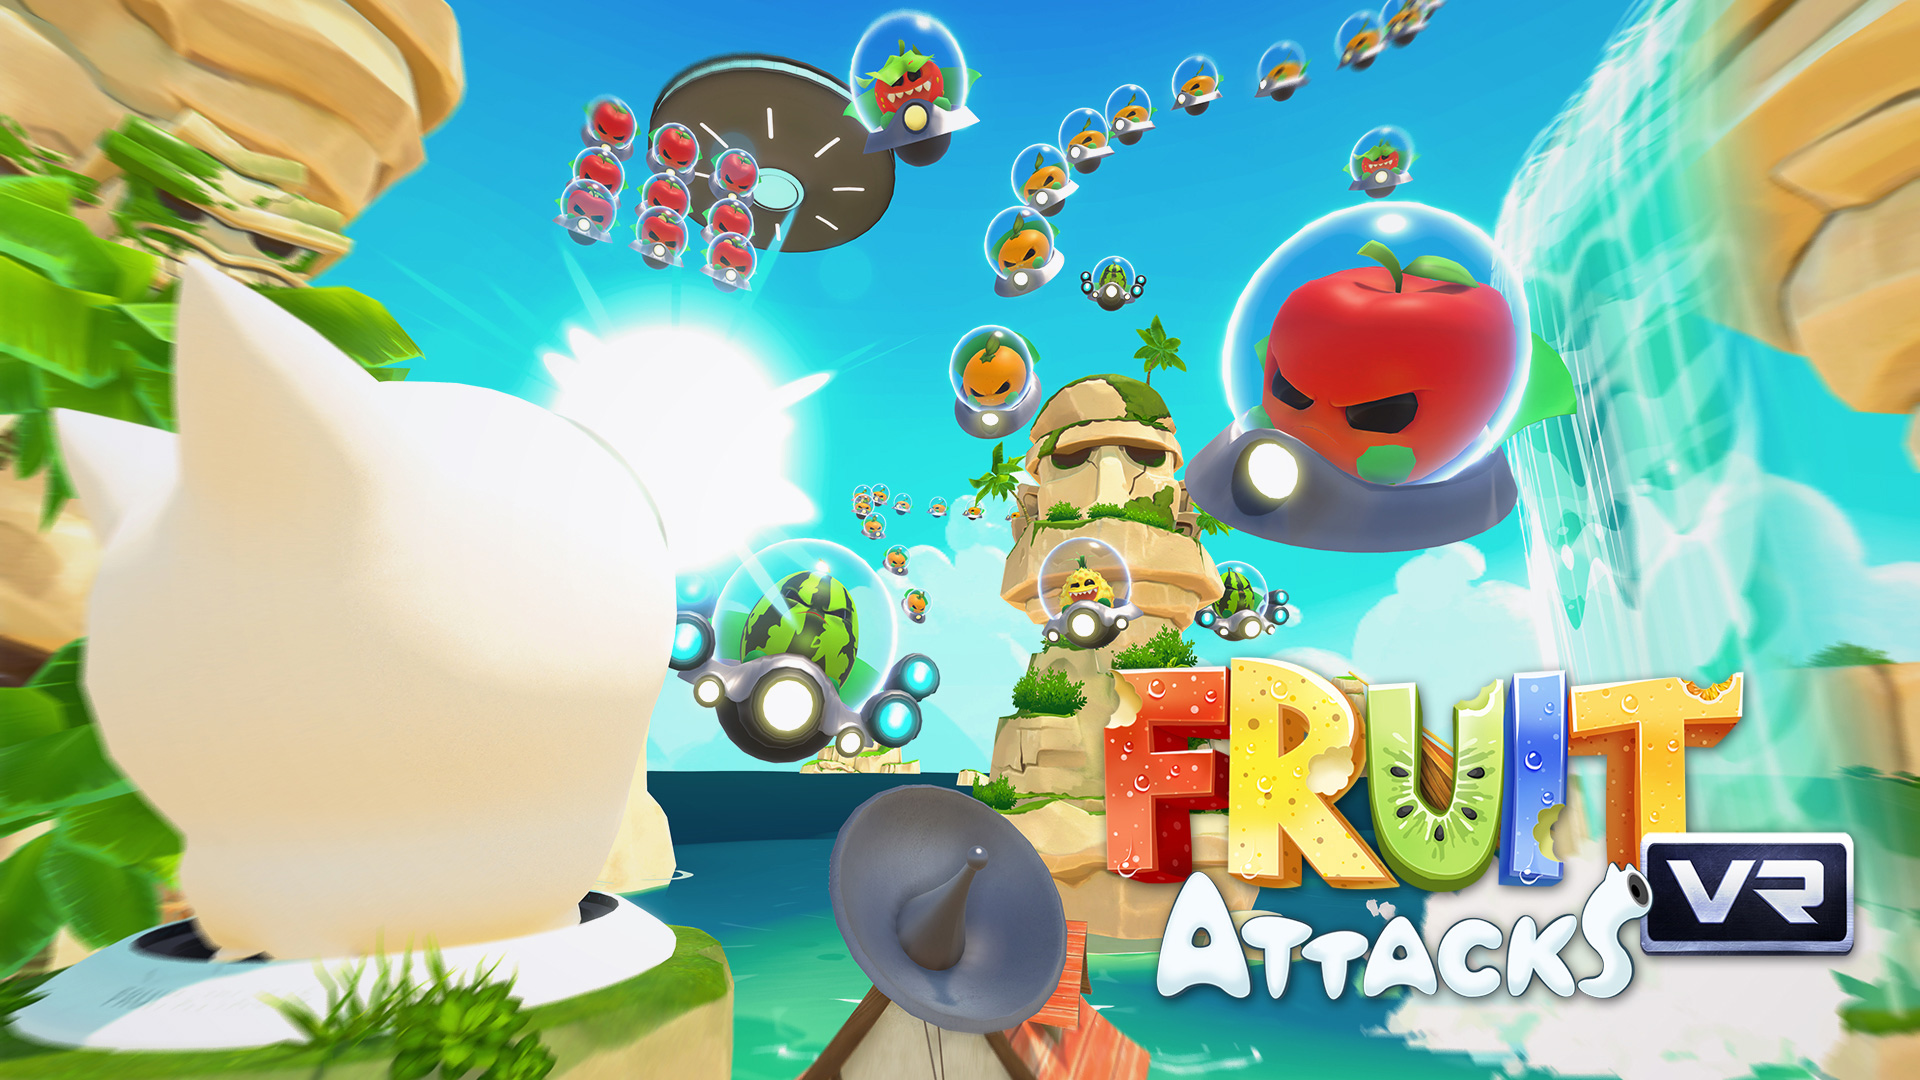 Fruit Attacks VR PlayStation VR vrplayer.fr